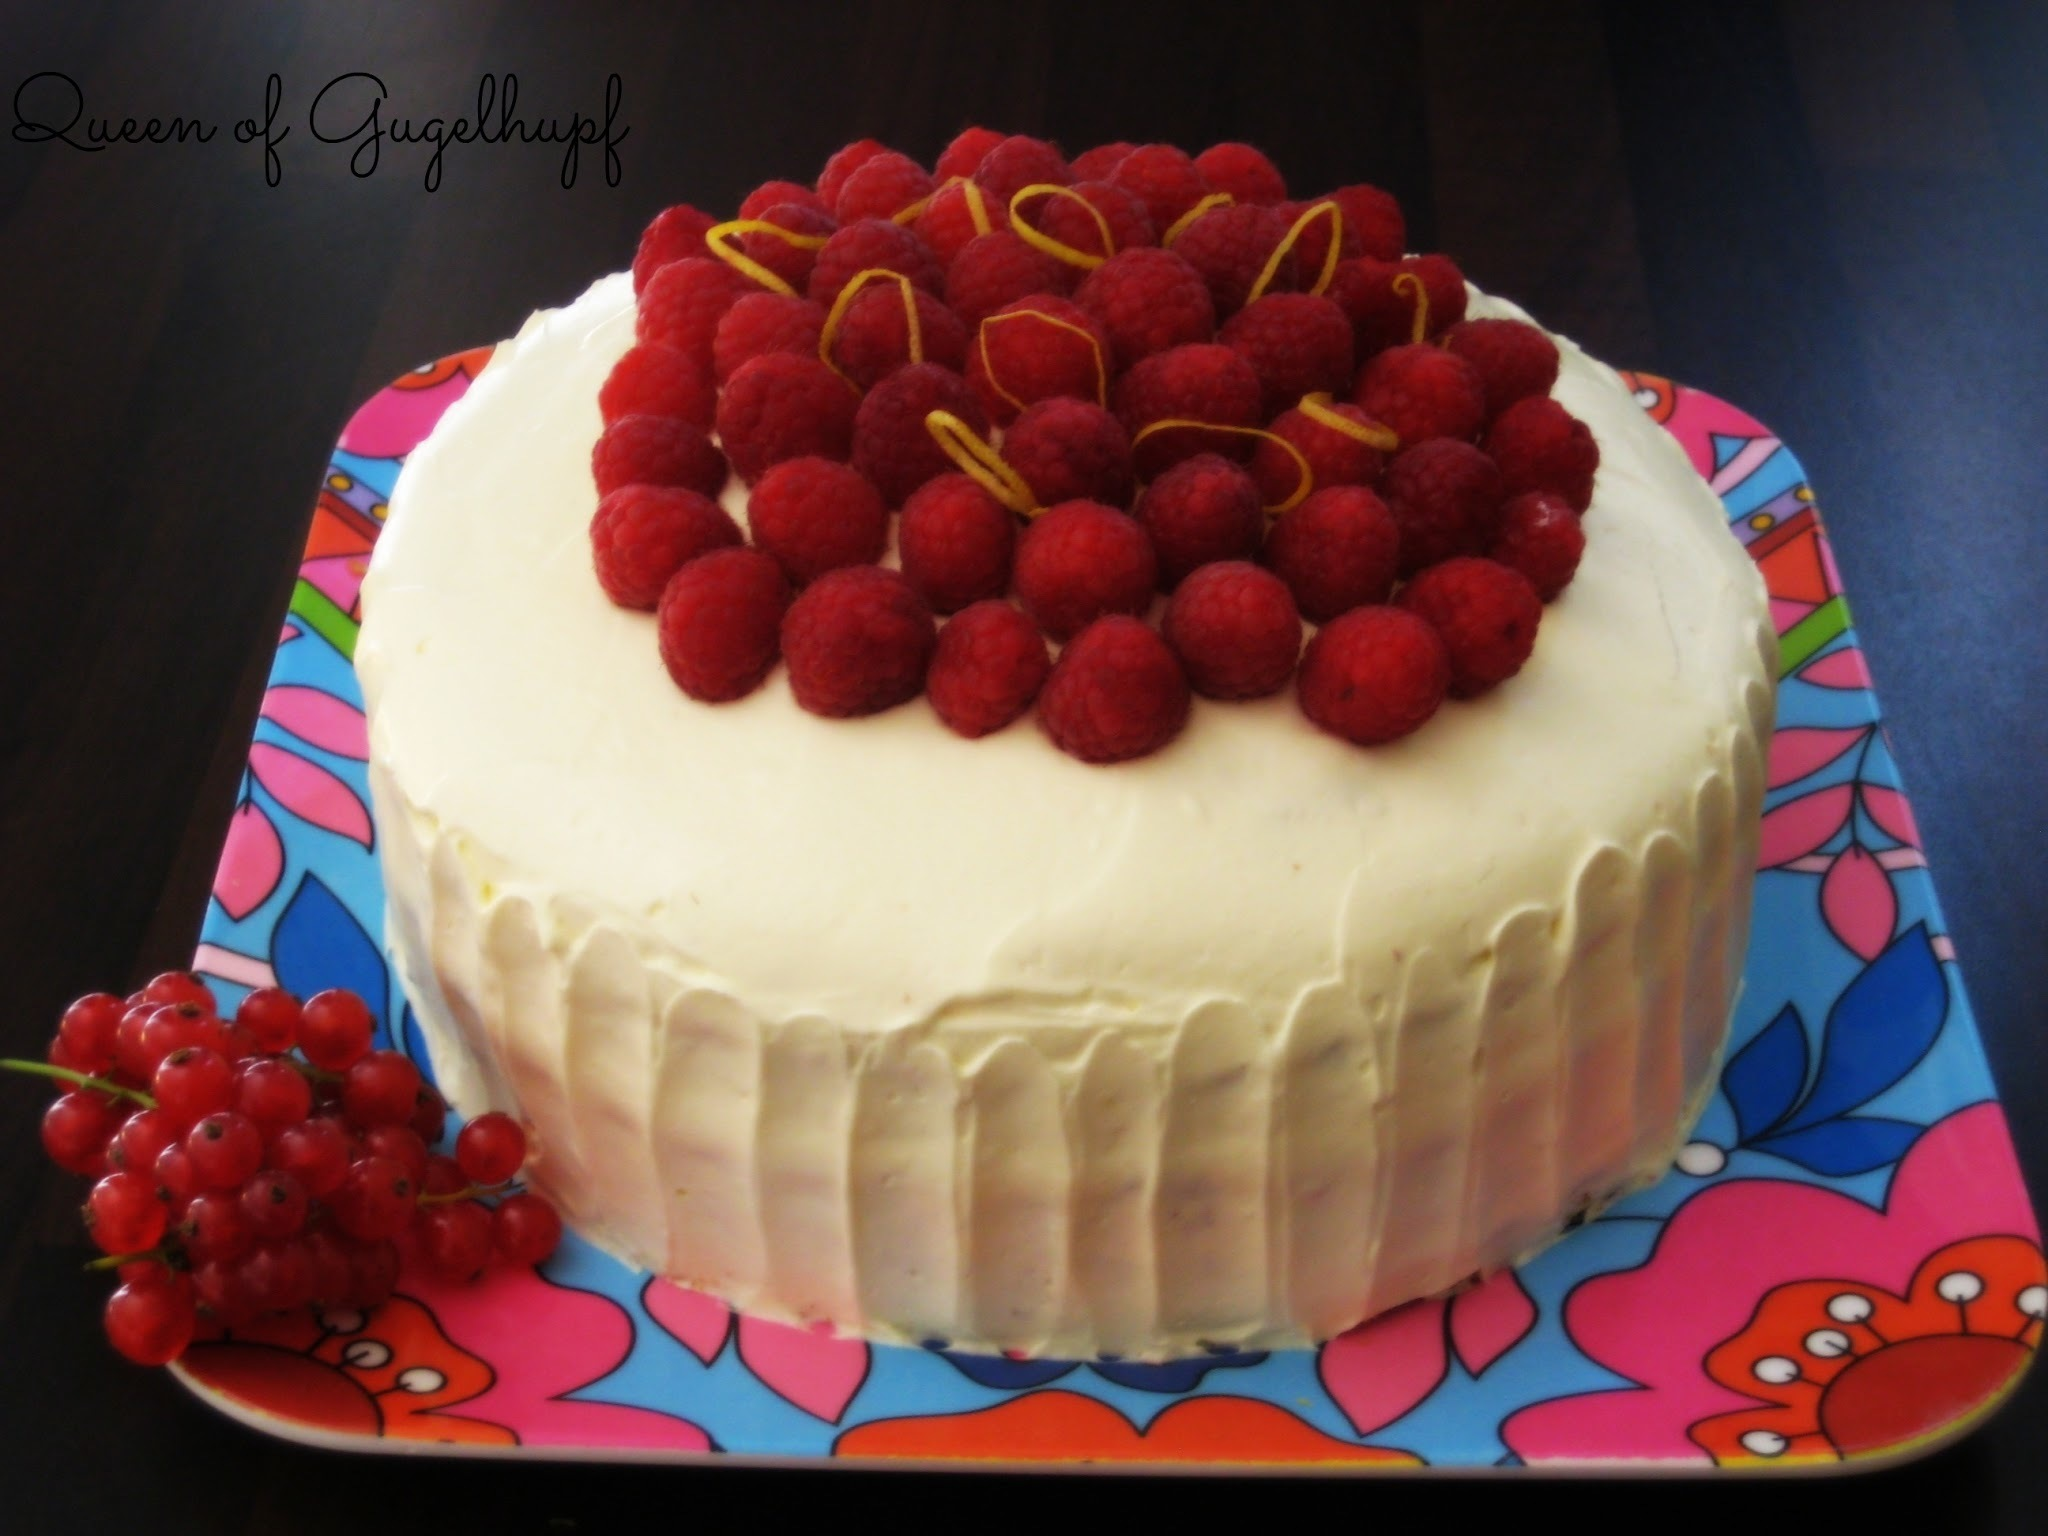 Lemony Red Current Cake with Vanilla Icing